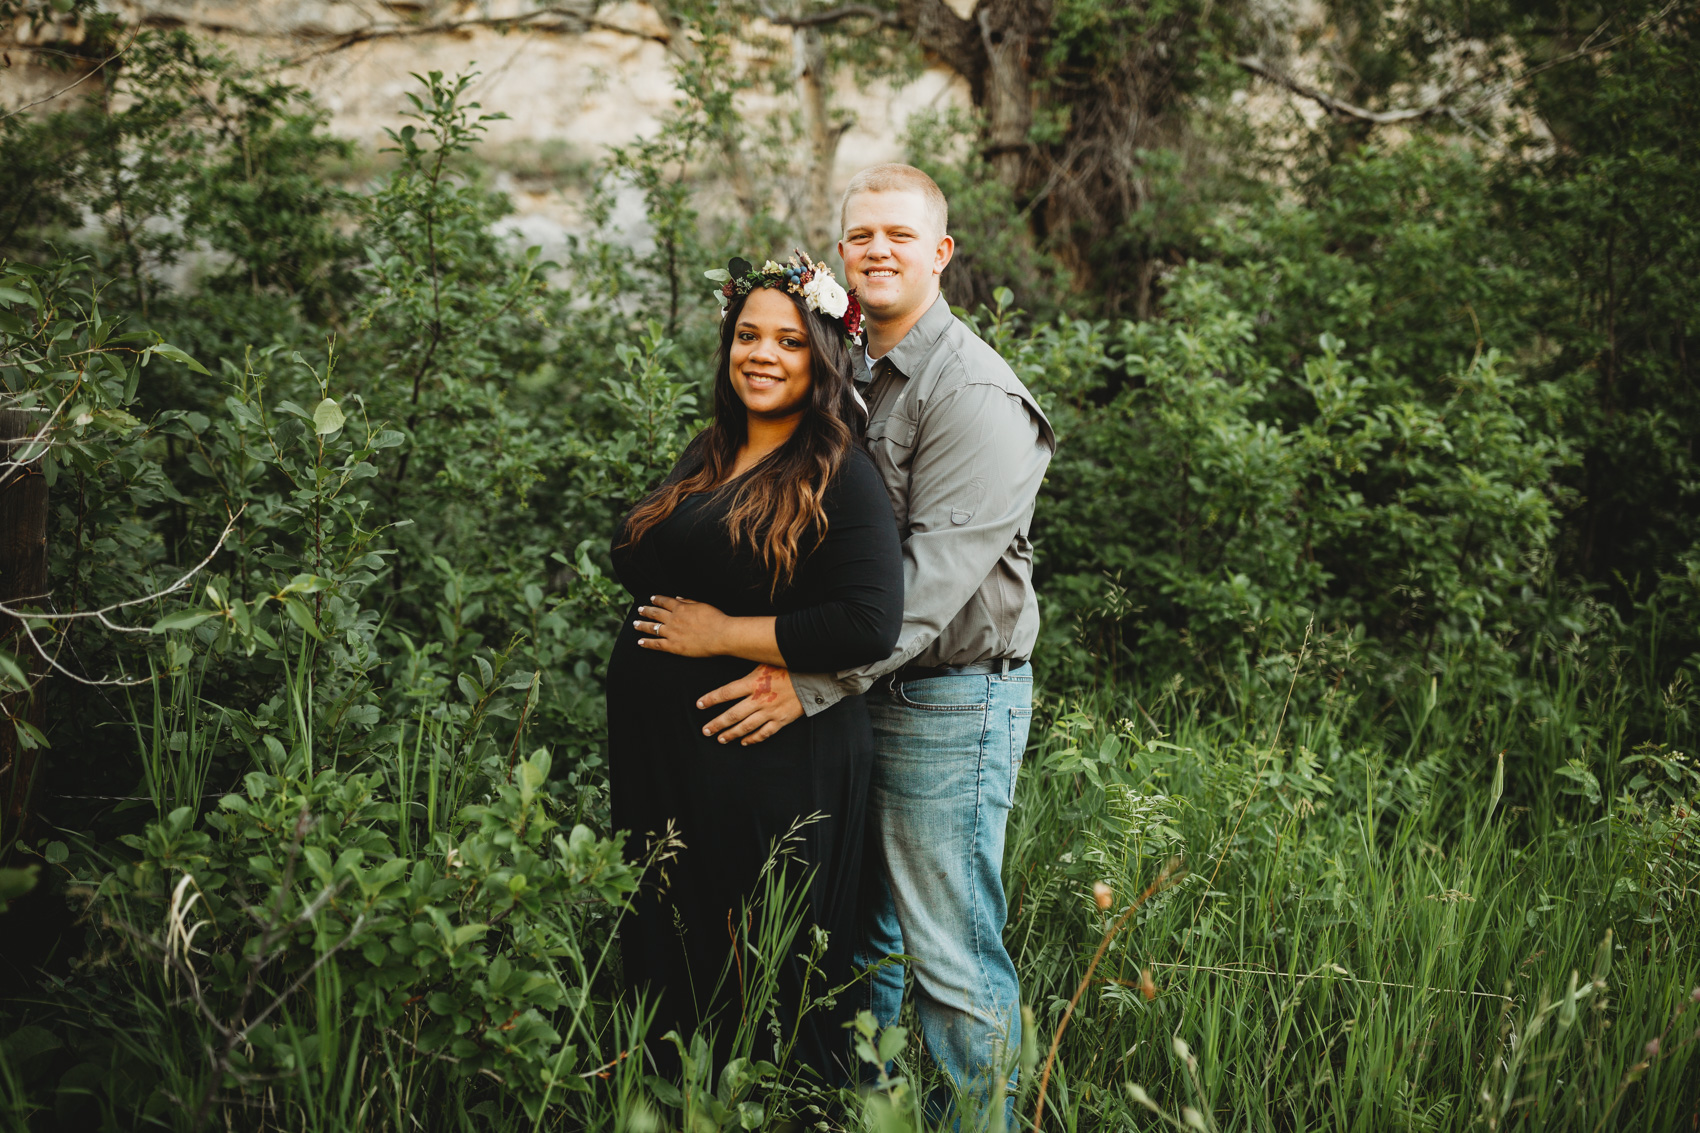 deja-ben-maternity-photography-great-falls-montana-4.jpg